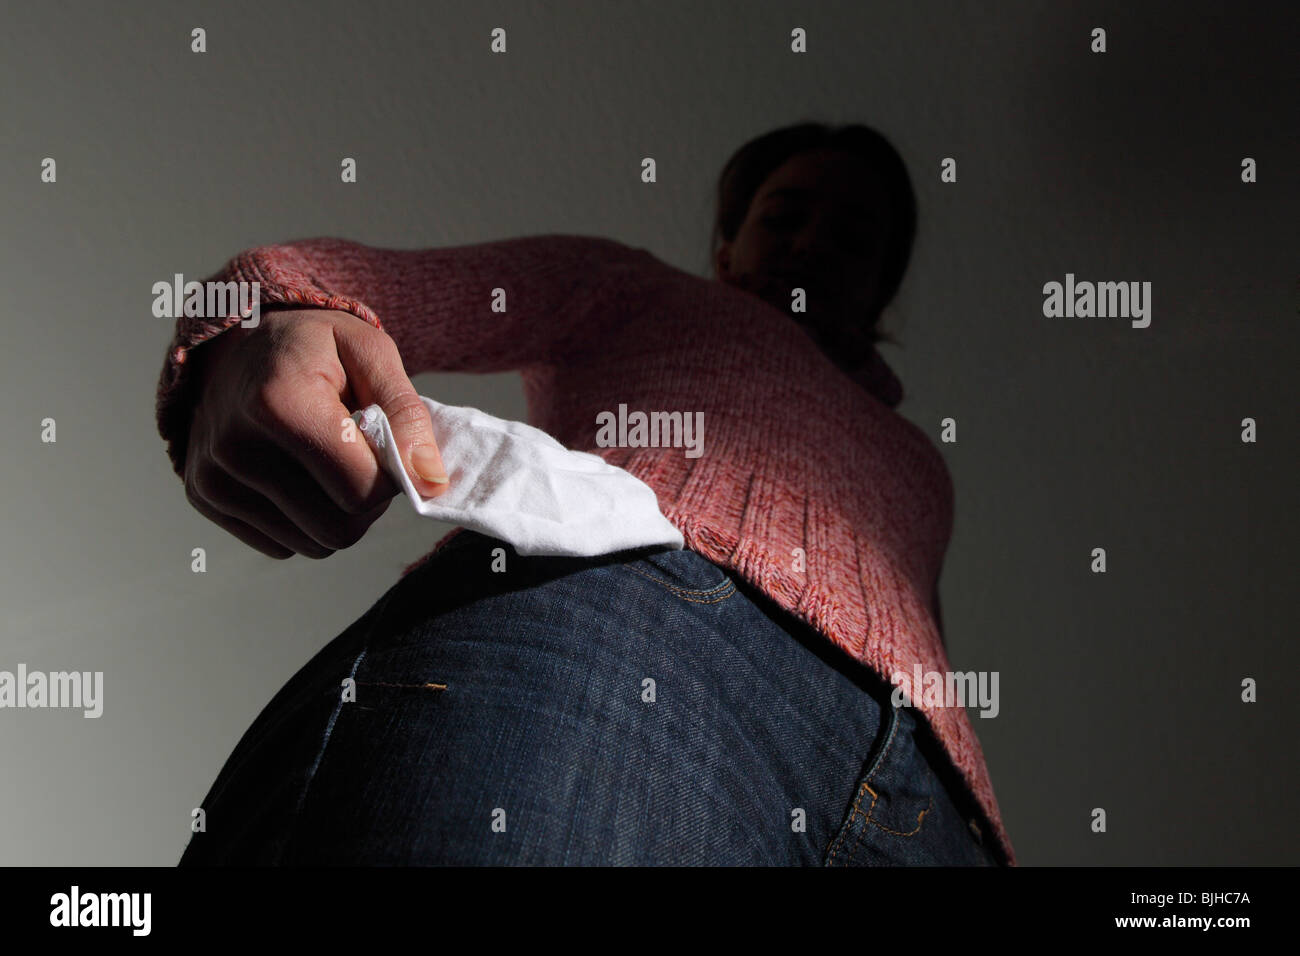 Woman with empty pockets. Symbol: insolvency, bankruptcy, etc - Stock Image